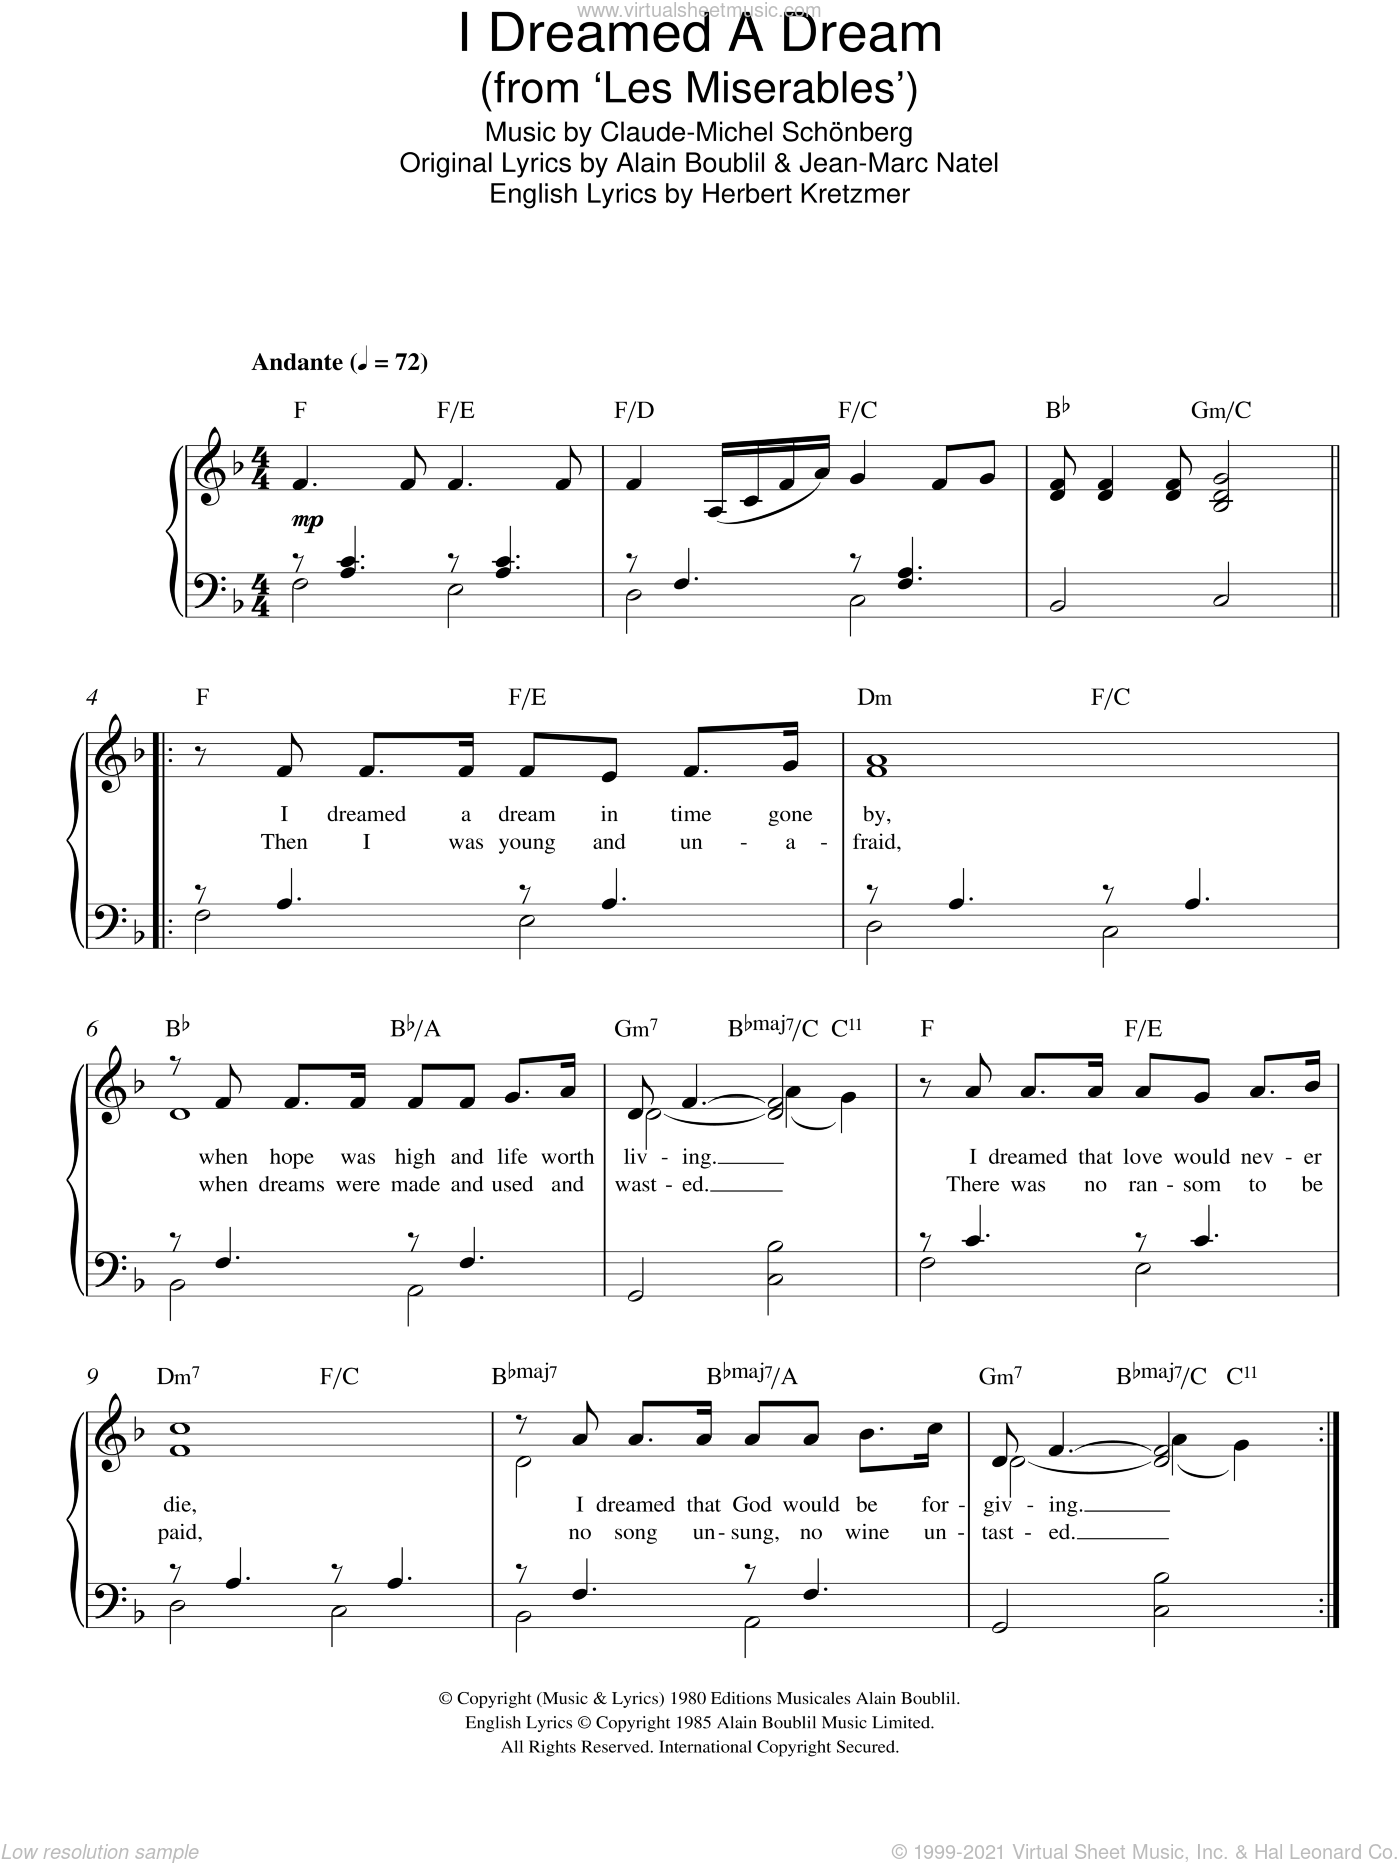 I Dreamed A Dream (from 'Les Miserables') sheet music for piano solo by Jean-Marc Natel, Alain Boublil, Claude-Michel Schonberg and Herbert Kretzmer. Score Image Preview.